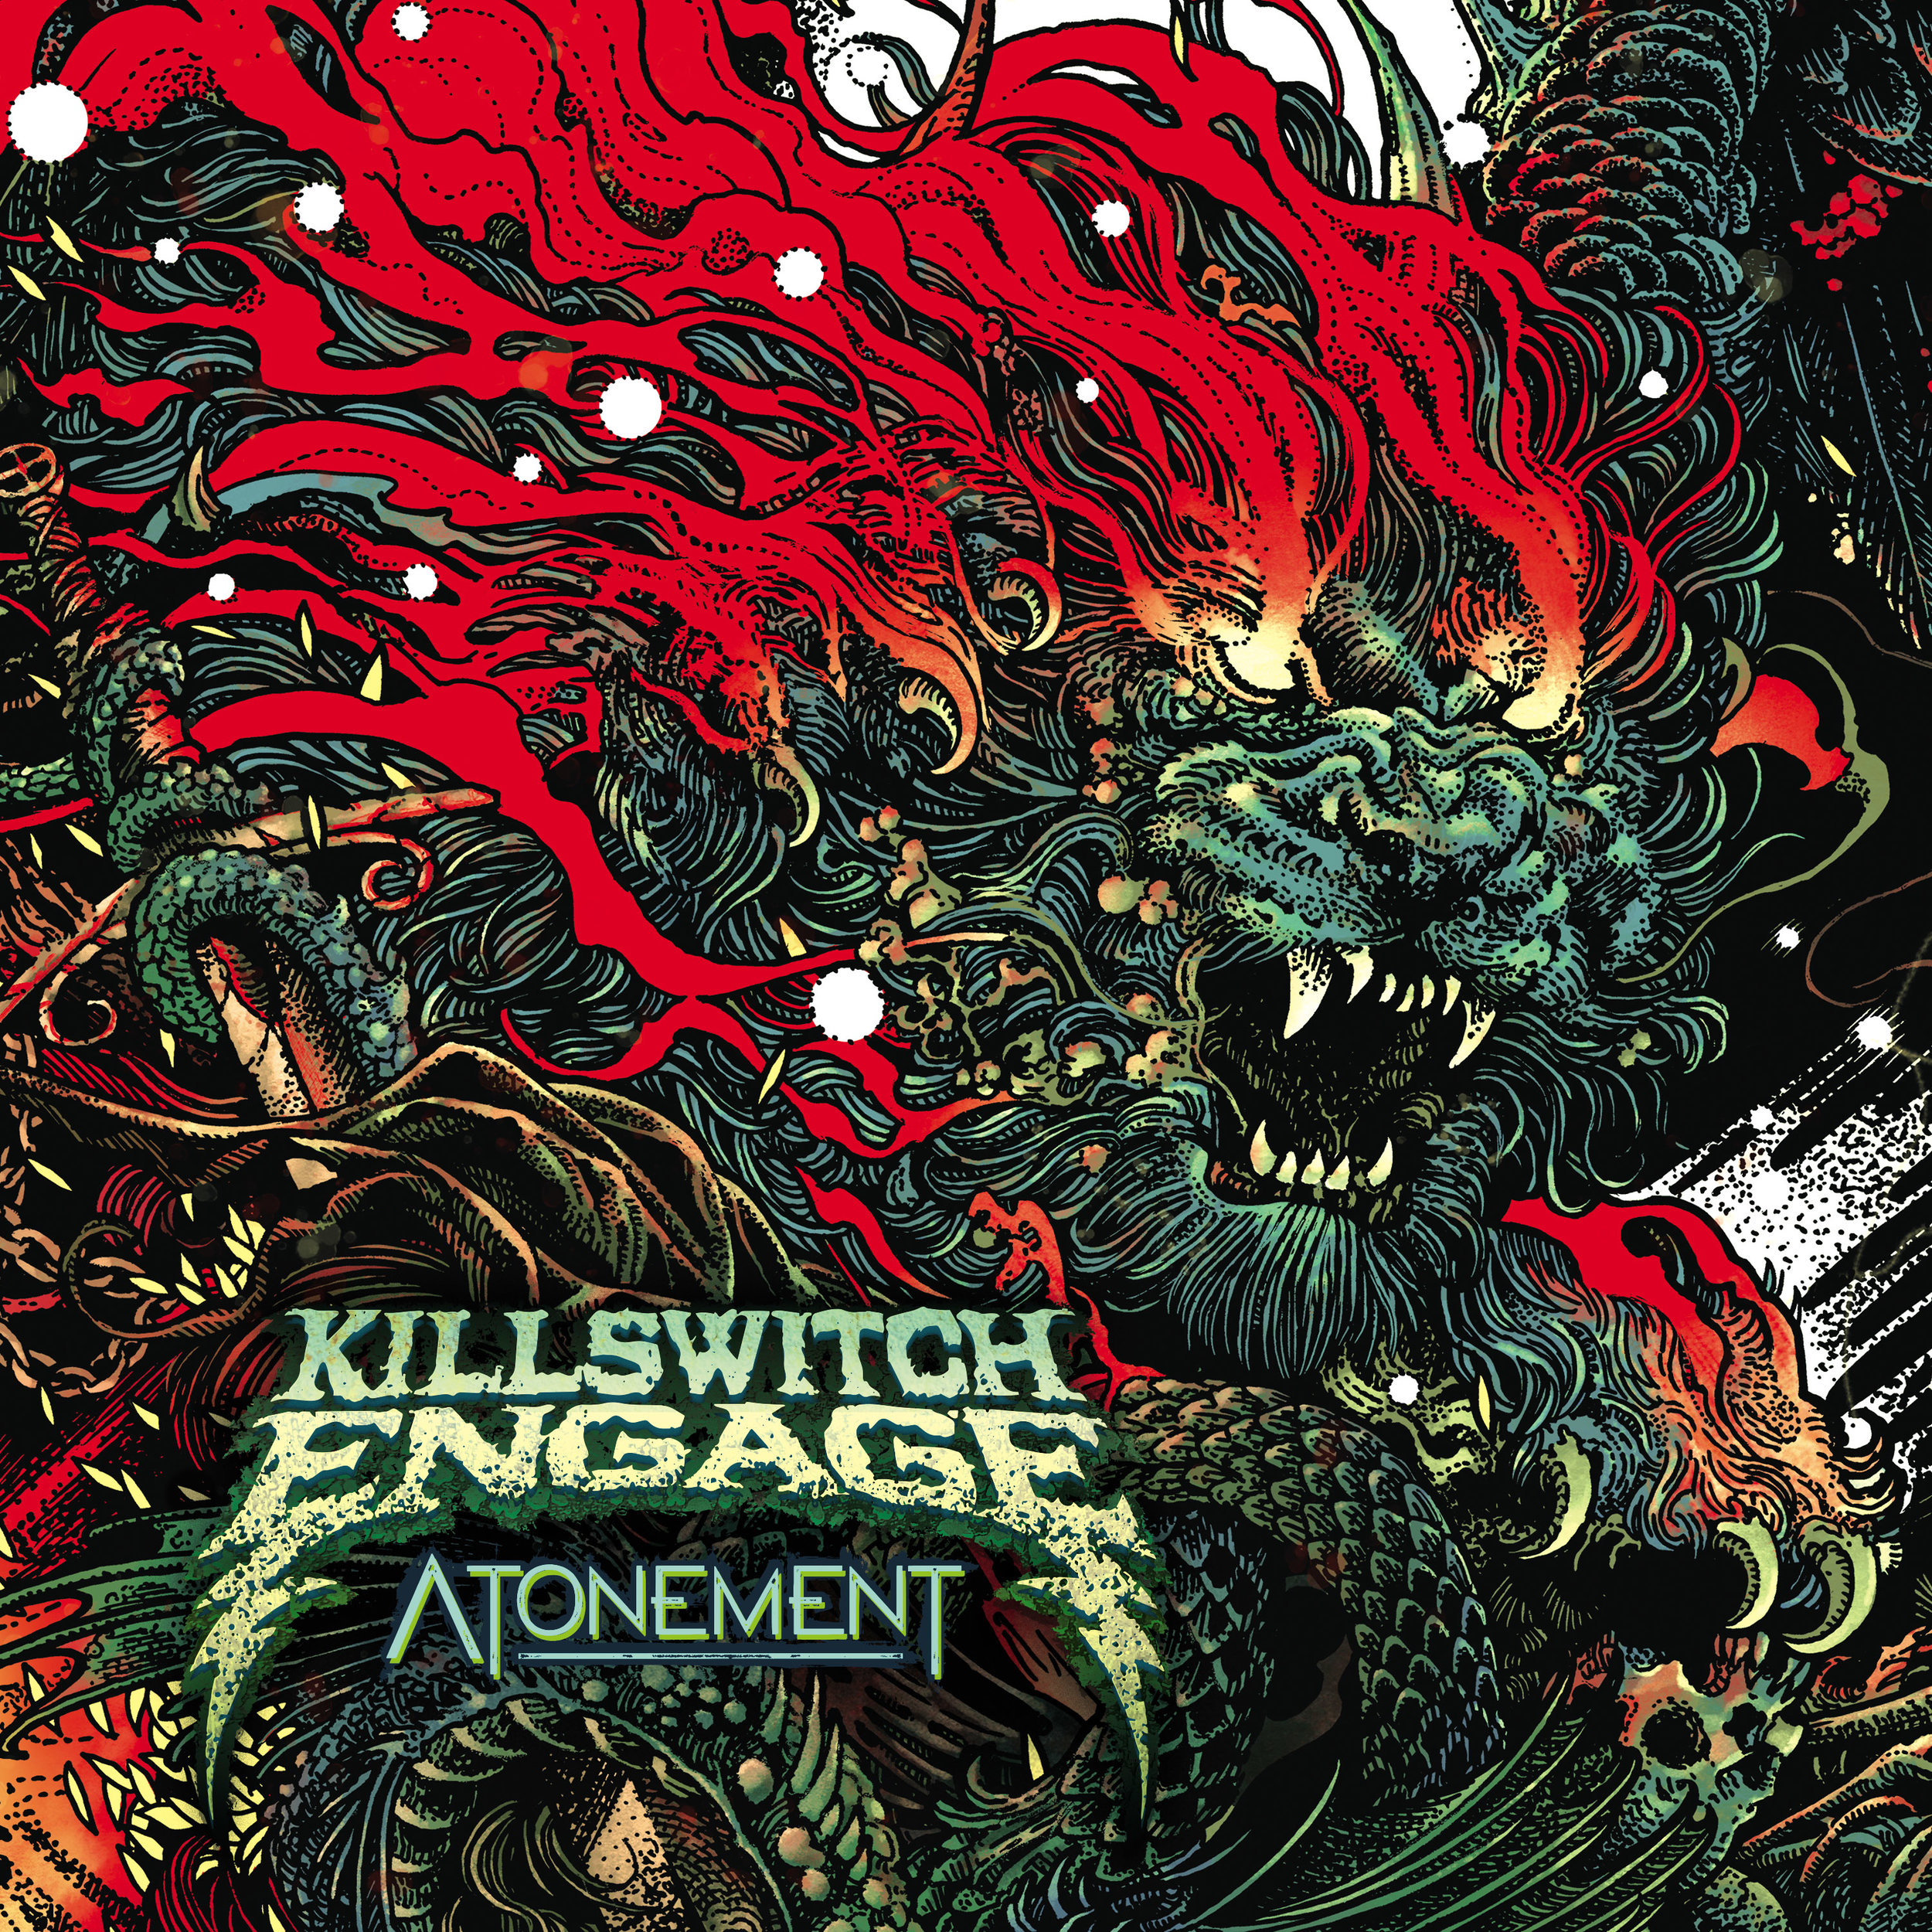 Killswitch Engage - Atonement.jpg